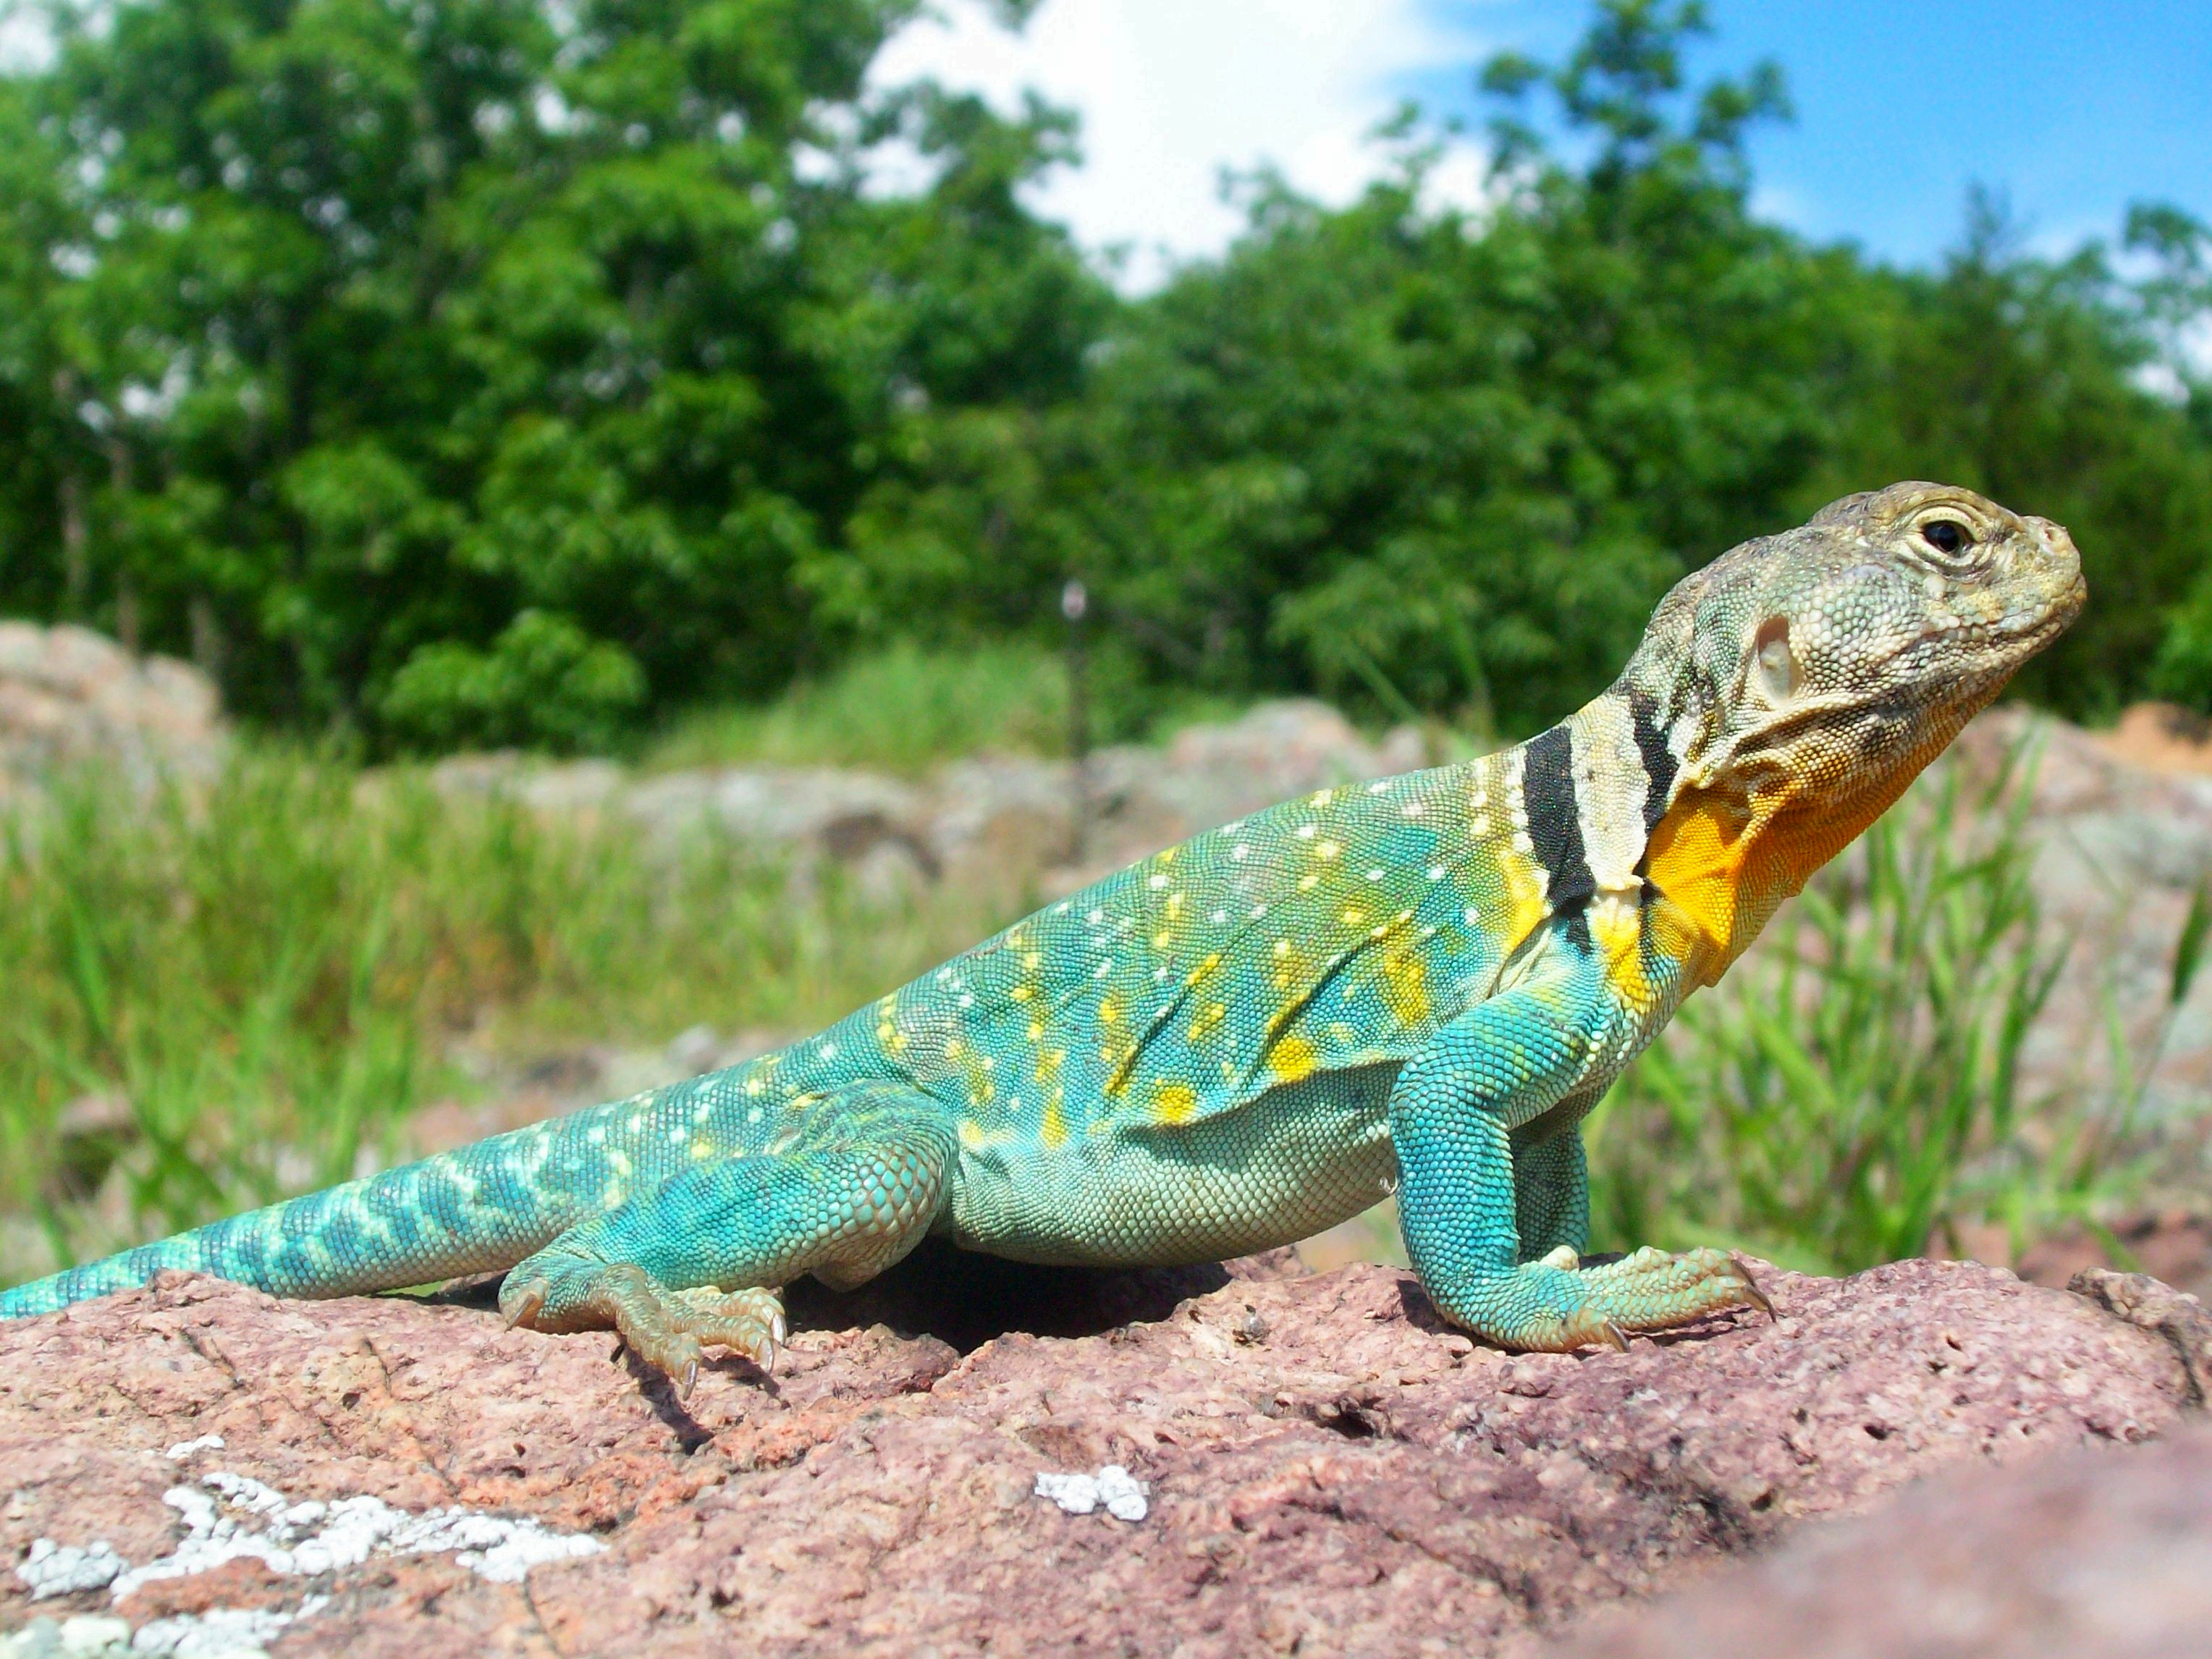 Male Collared Lizard: This Photo by Unknown Author is licensed under CC BY-SA